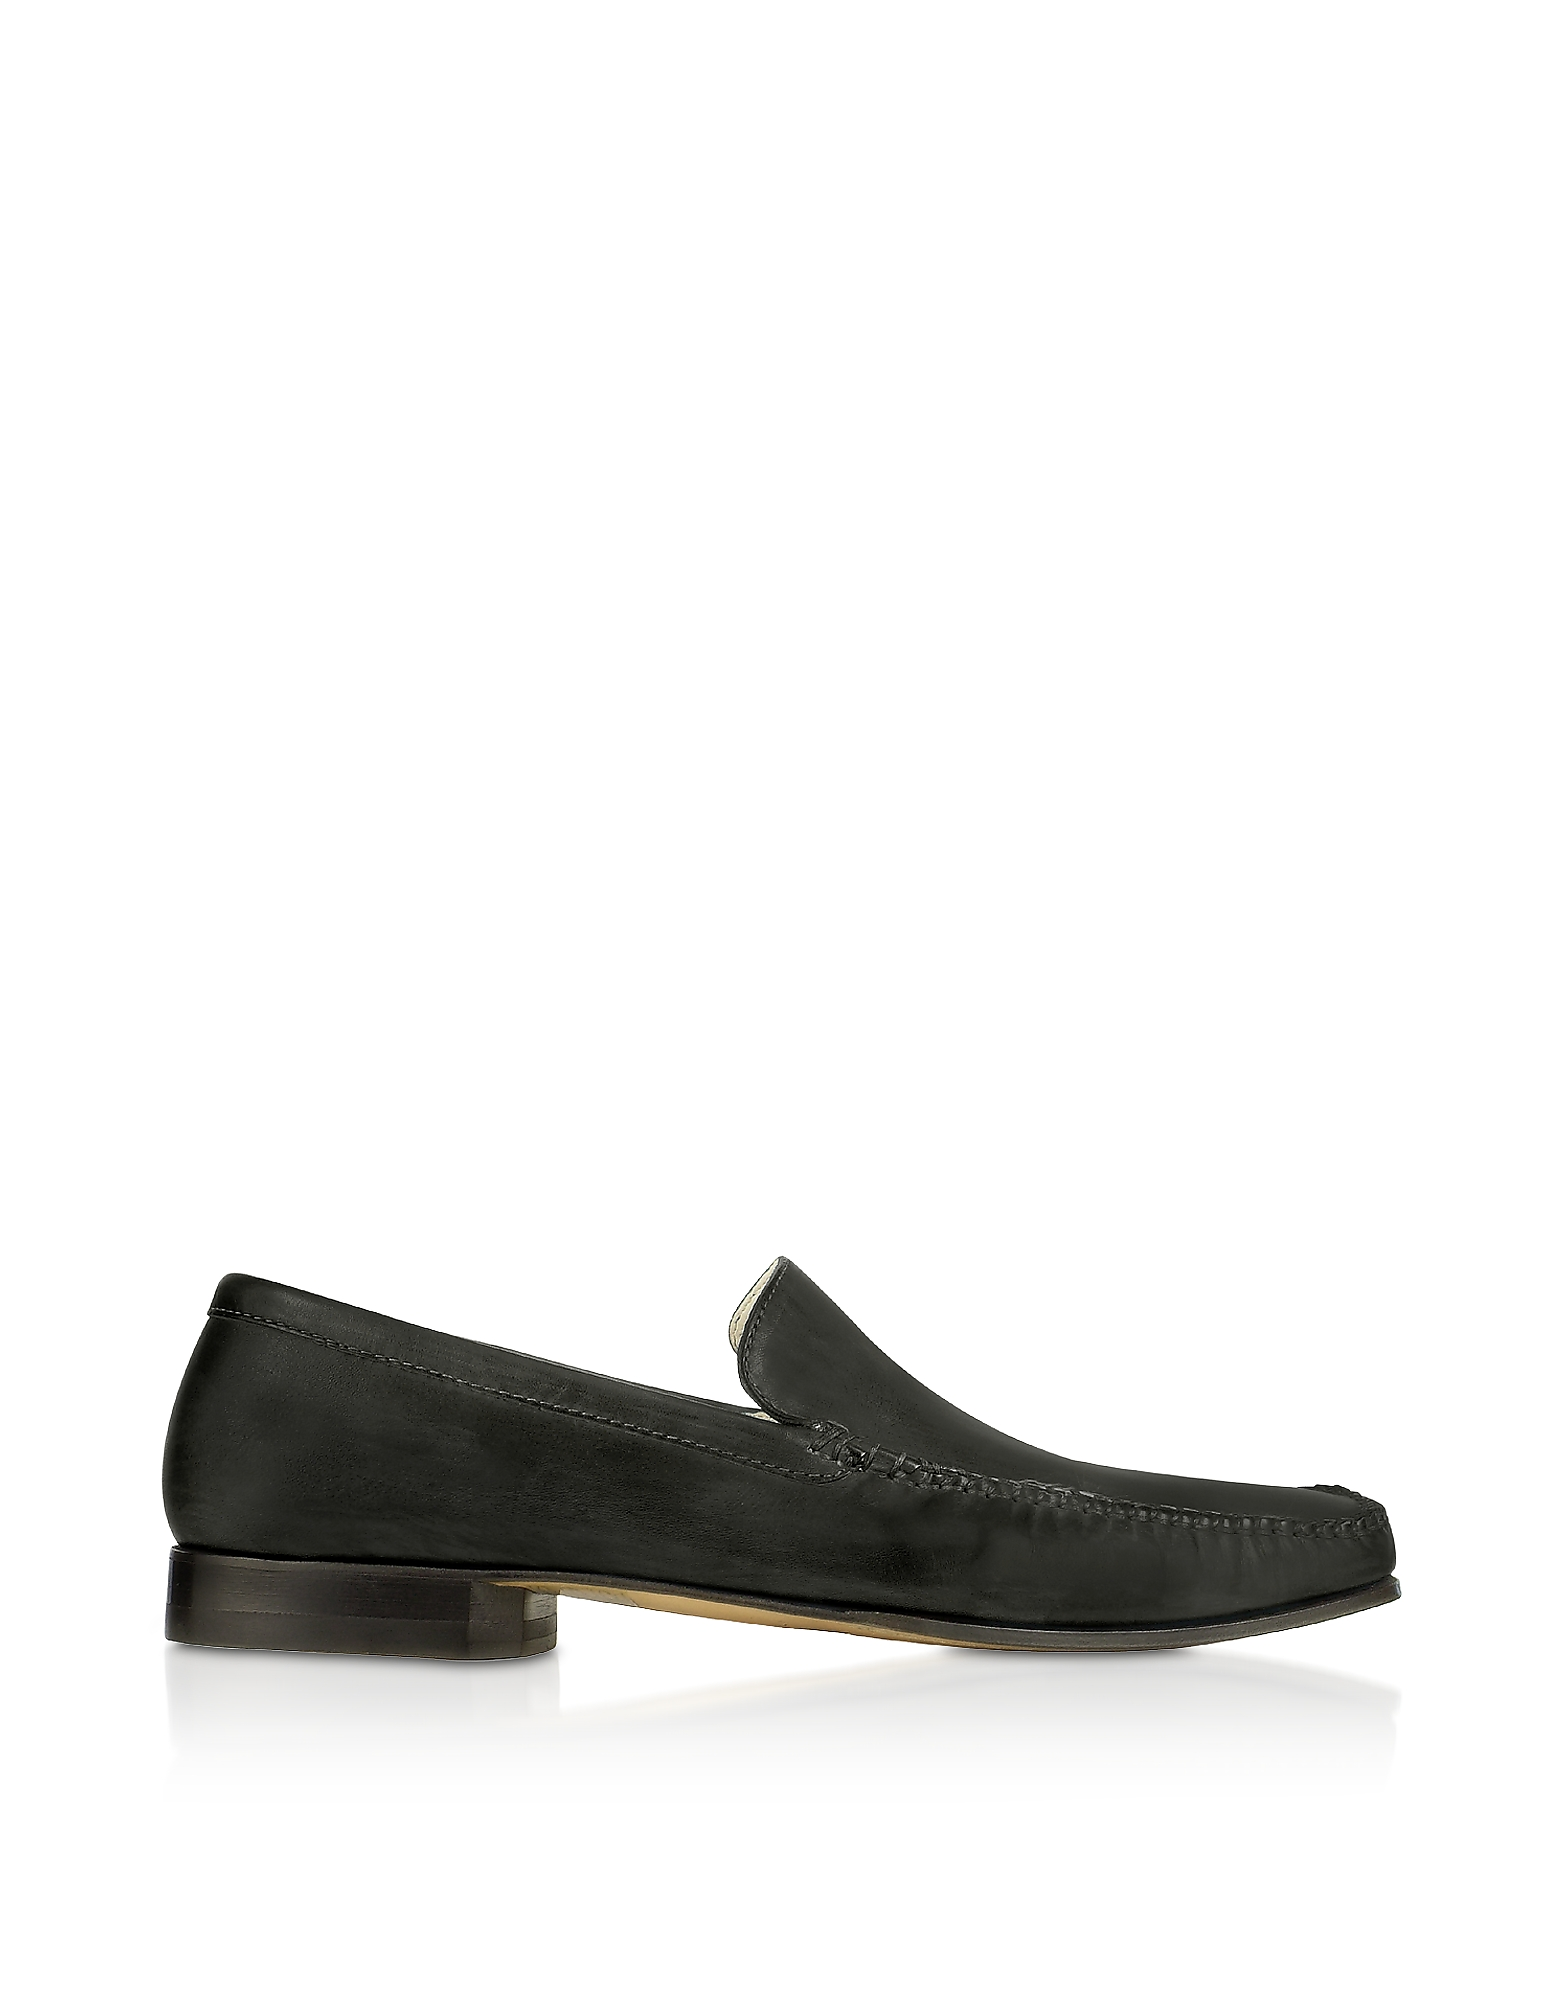 Pakerson Designer Shoes, Black Italian Handmade Leather Loafer Shoes